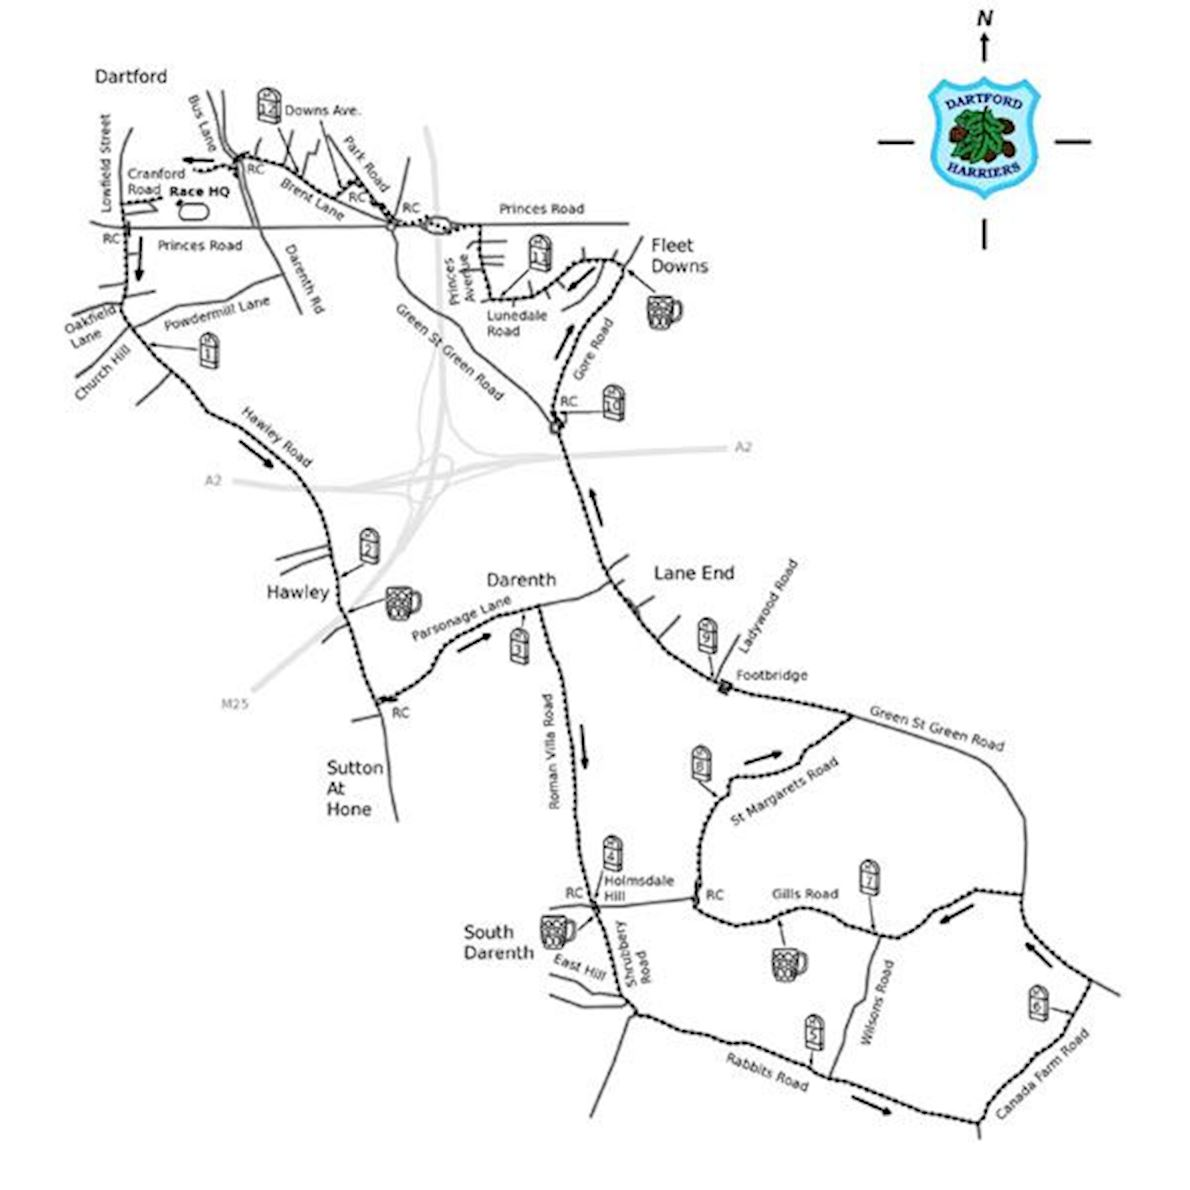 Dartford Half Marathon Route Map